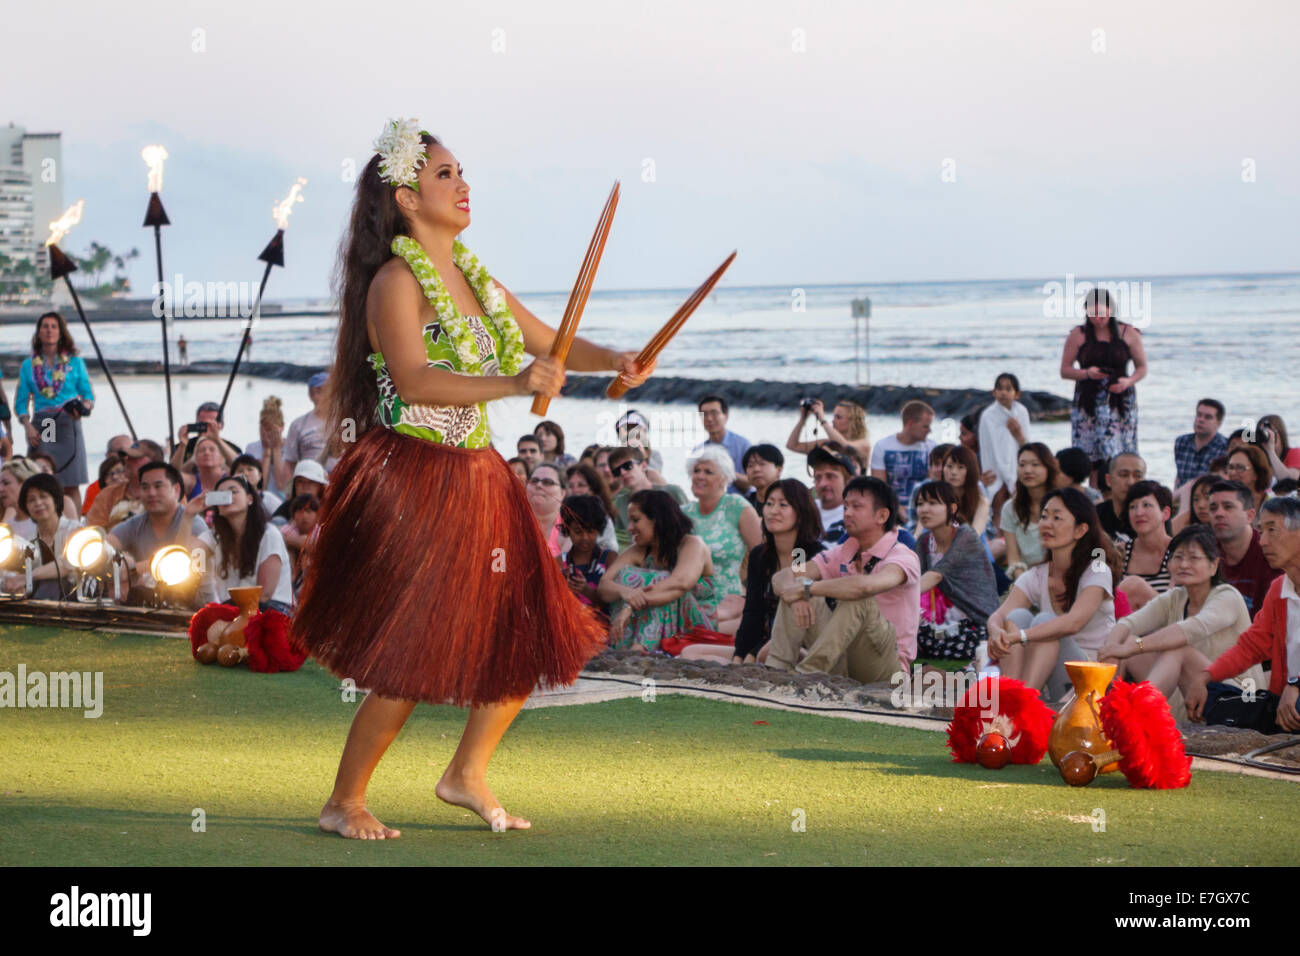 Hawaii Hawaiian Honolulu Waikiki Beach Kuhio Beach Park Hyatt Regency Hula Show woman dancing dancer dance audience - Stock Image